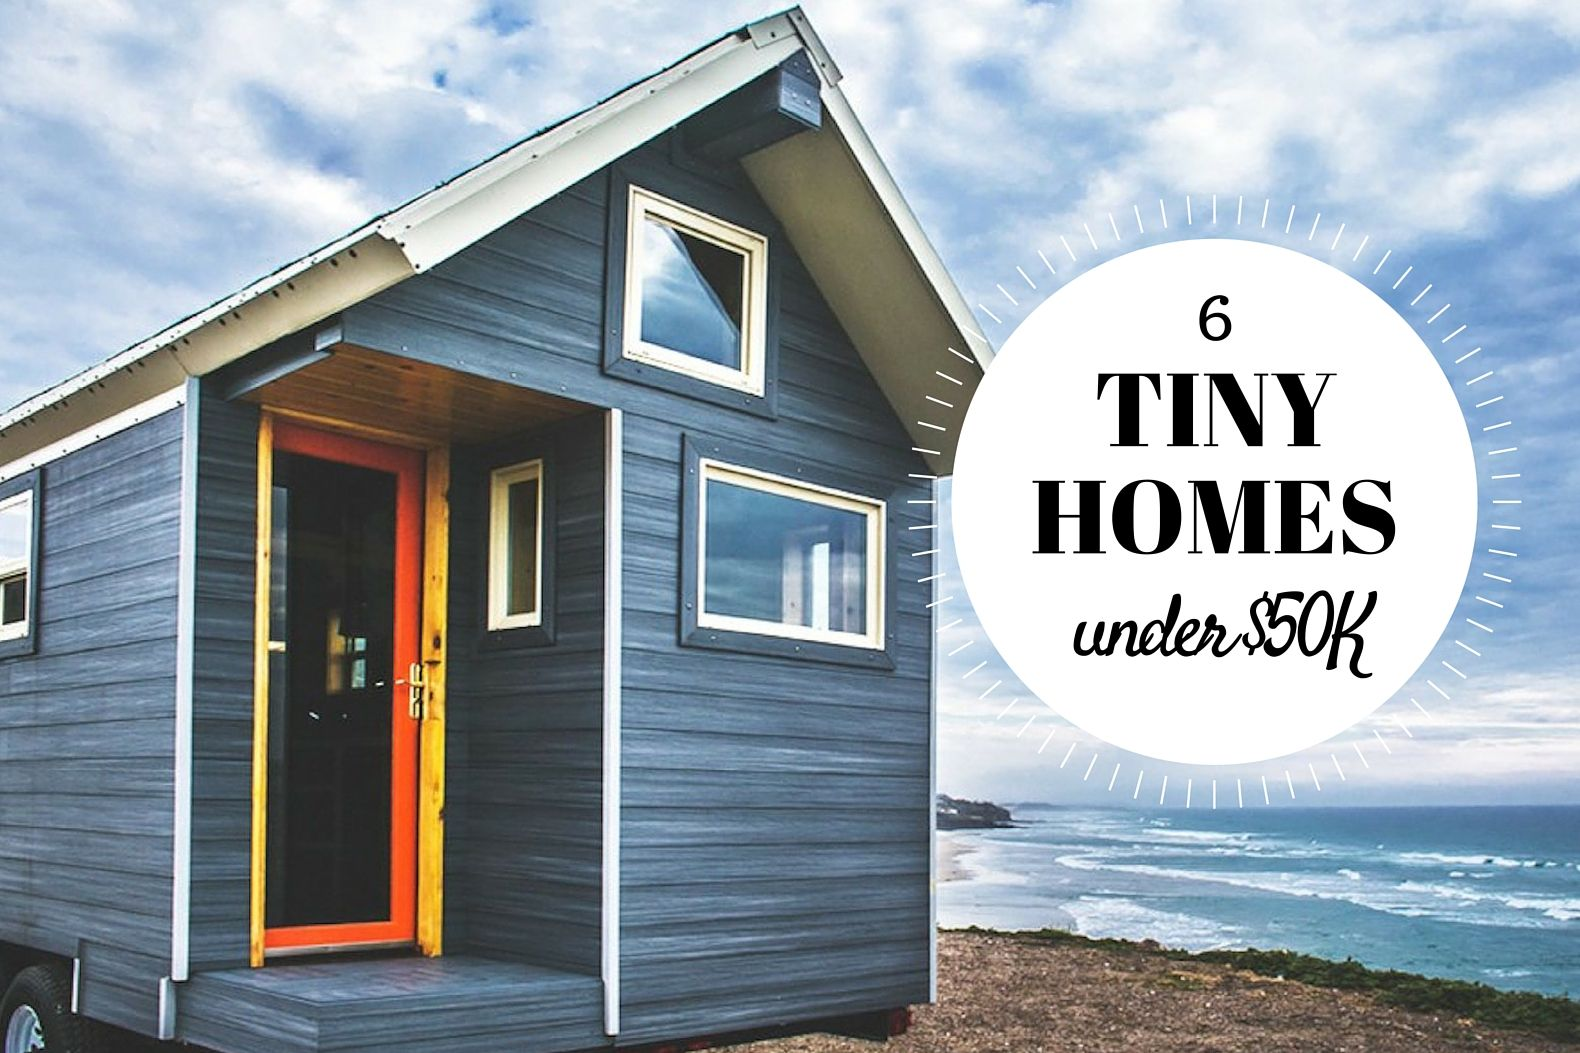 6 Tiny Homes under $50,000 you can buy right now | Tiny houses ...